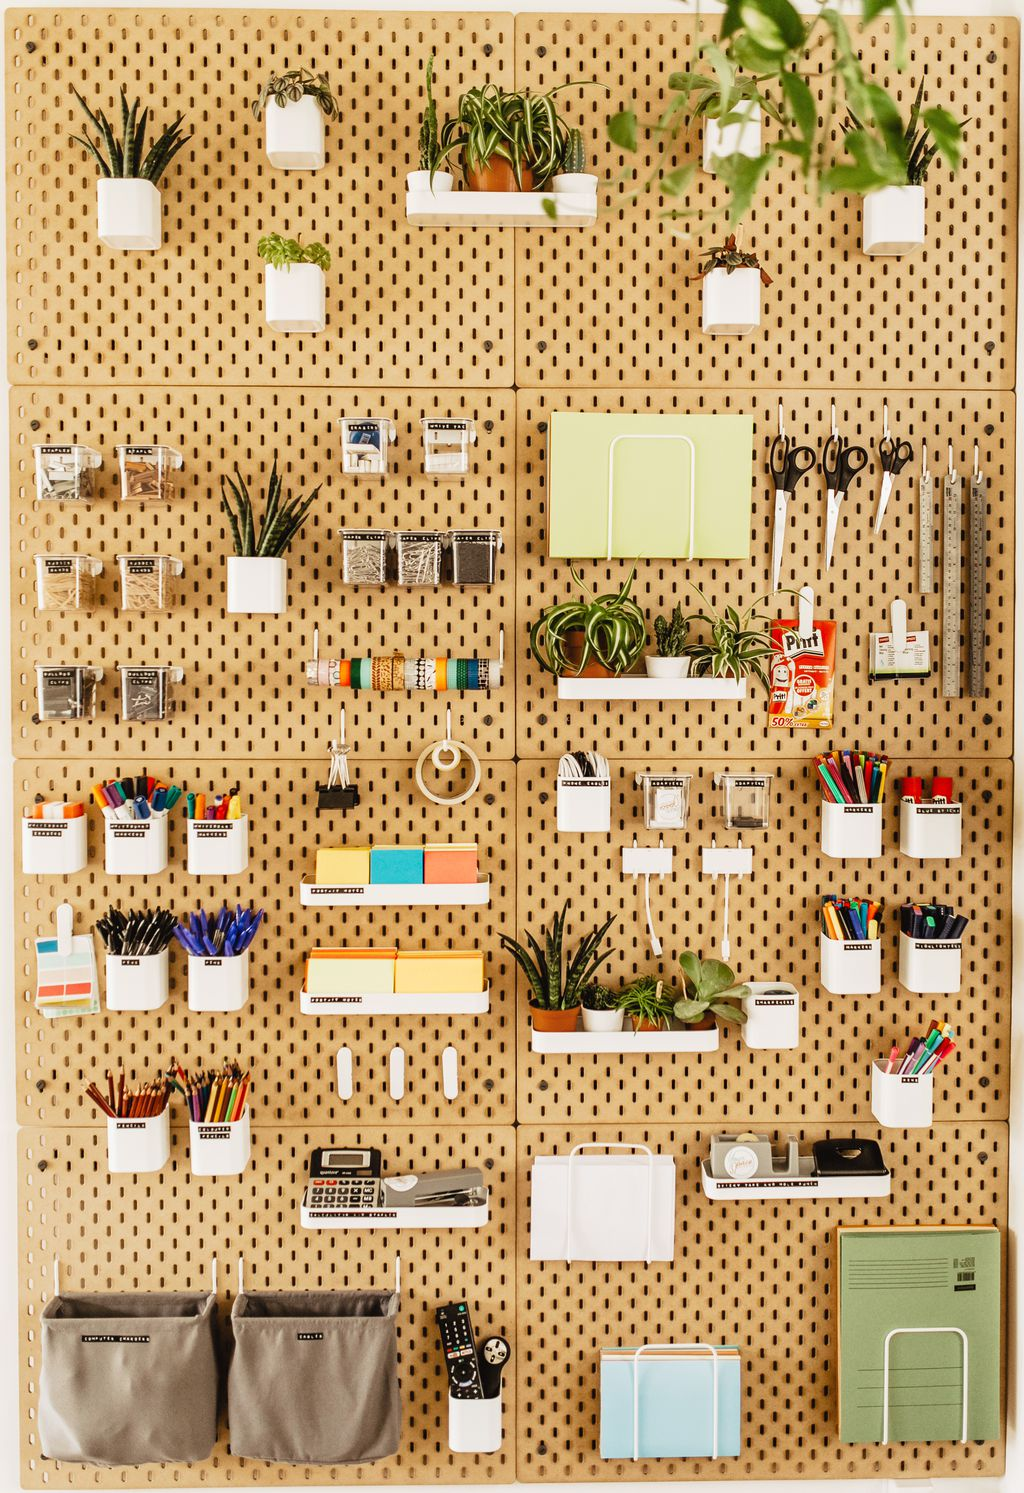 Stationery wall